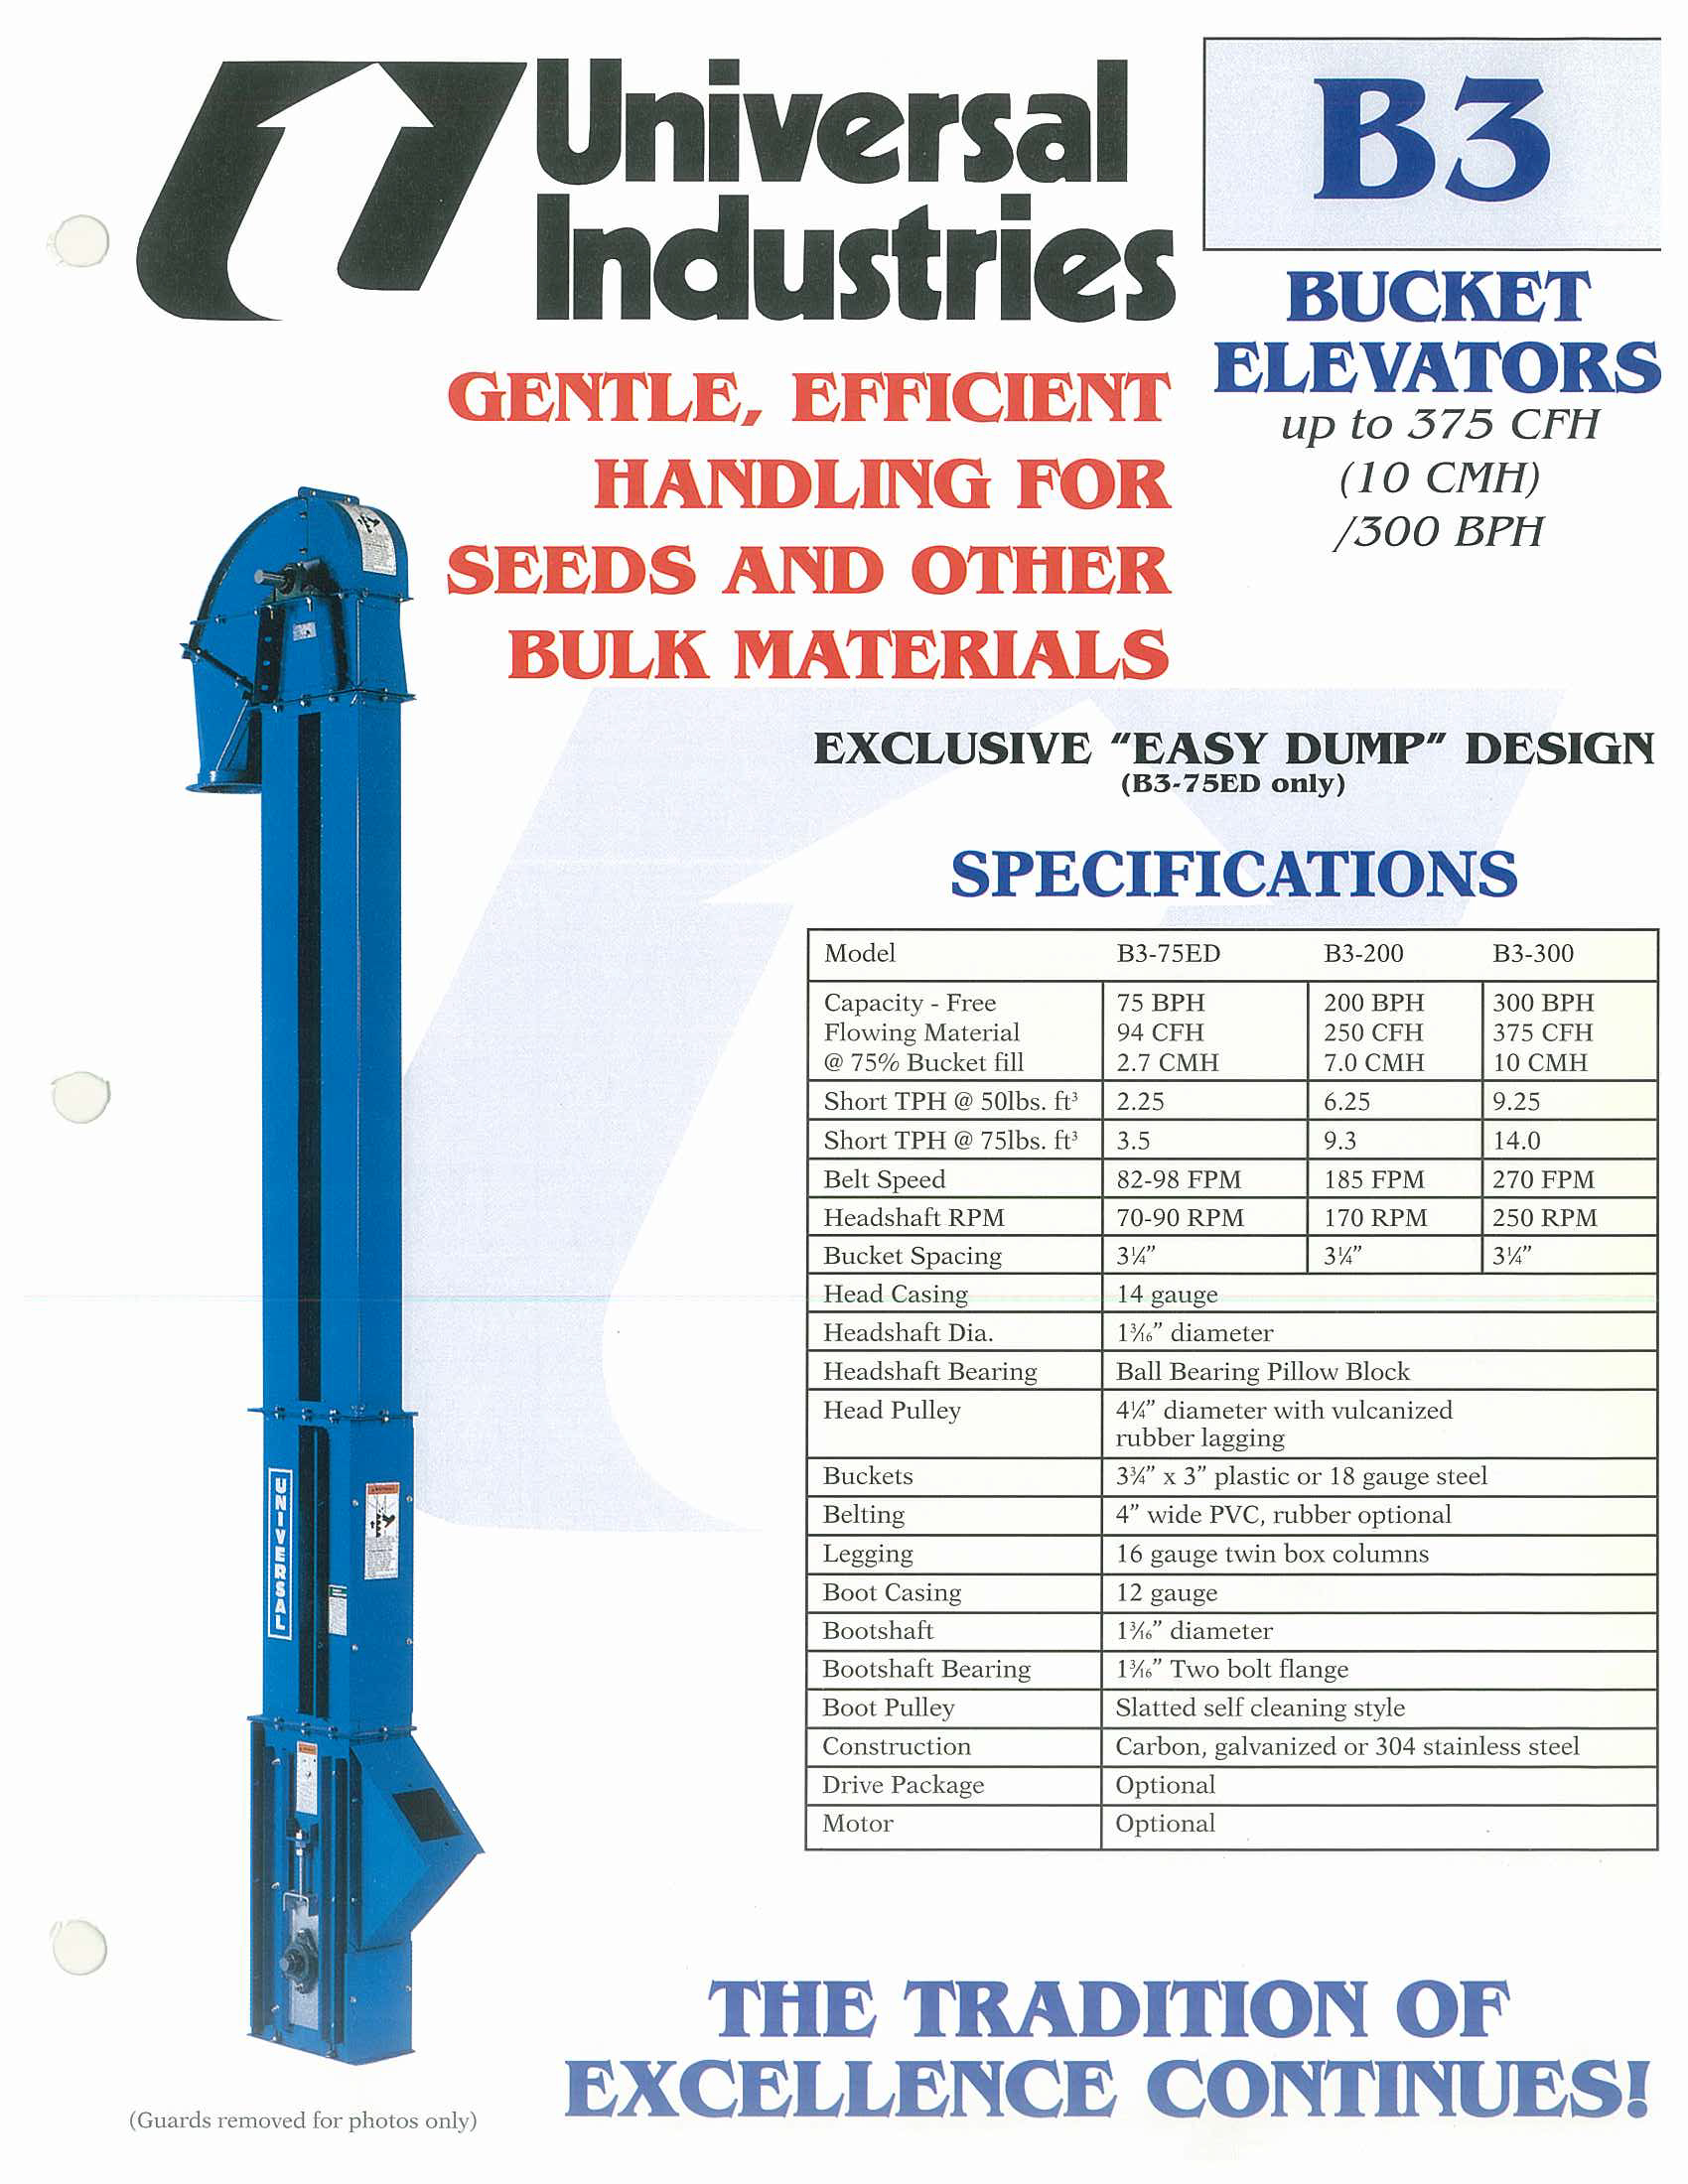 Ag West Supply >> Universal Industries B3 Bucket Elevator - West Coast Seed Mill Supply Company